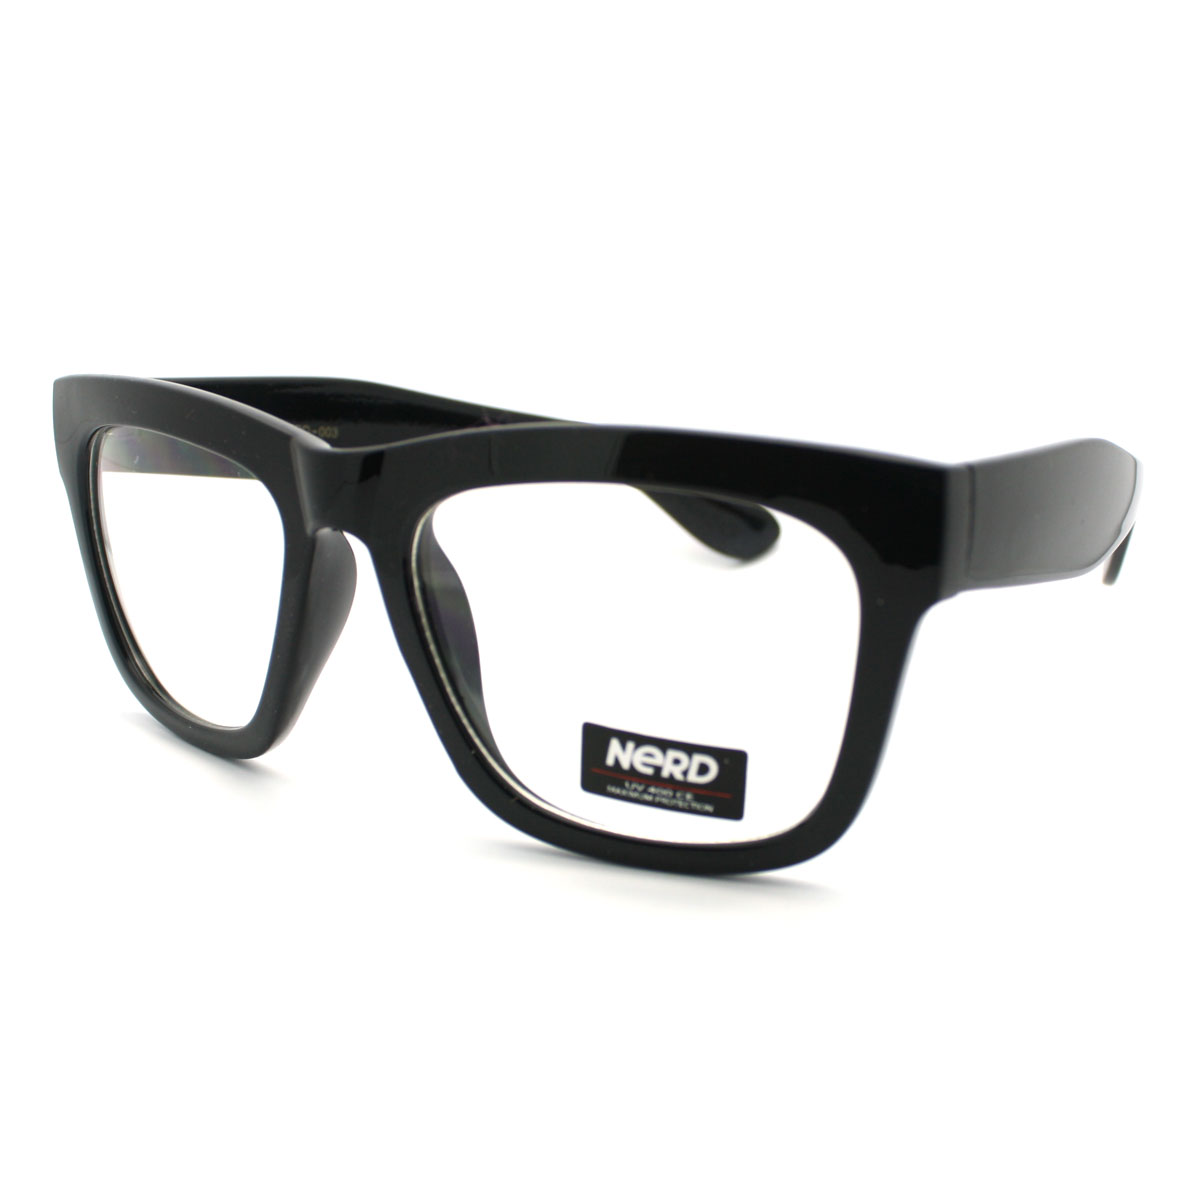 new black thick eyeglass frame oversized wayfarer unisex optical glasses